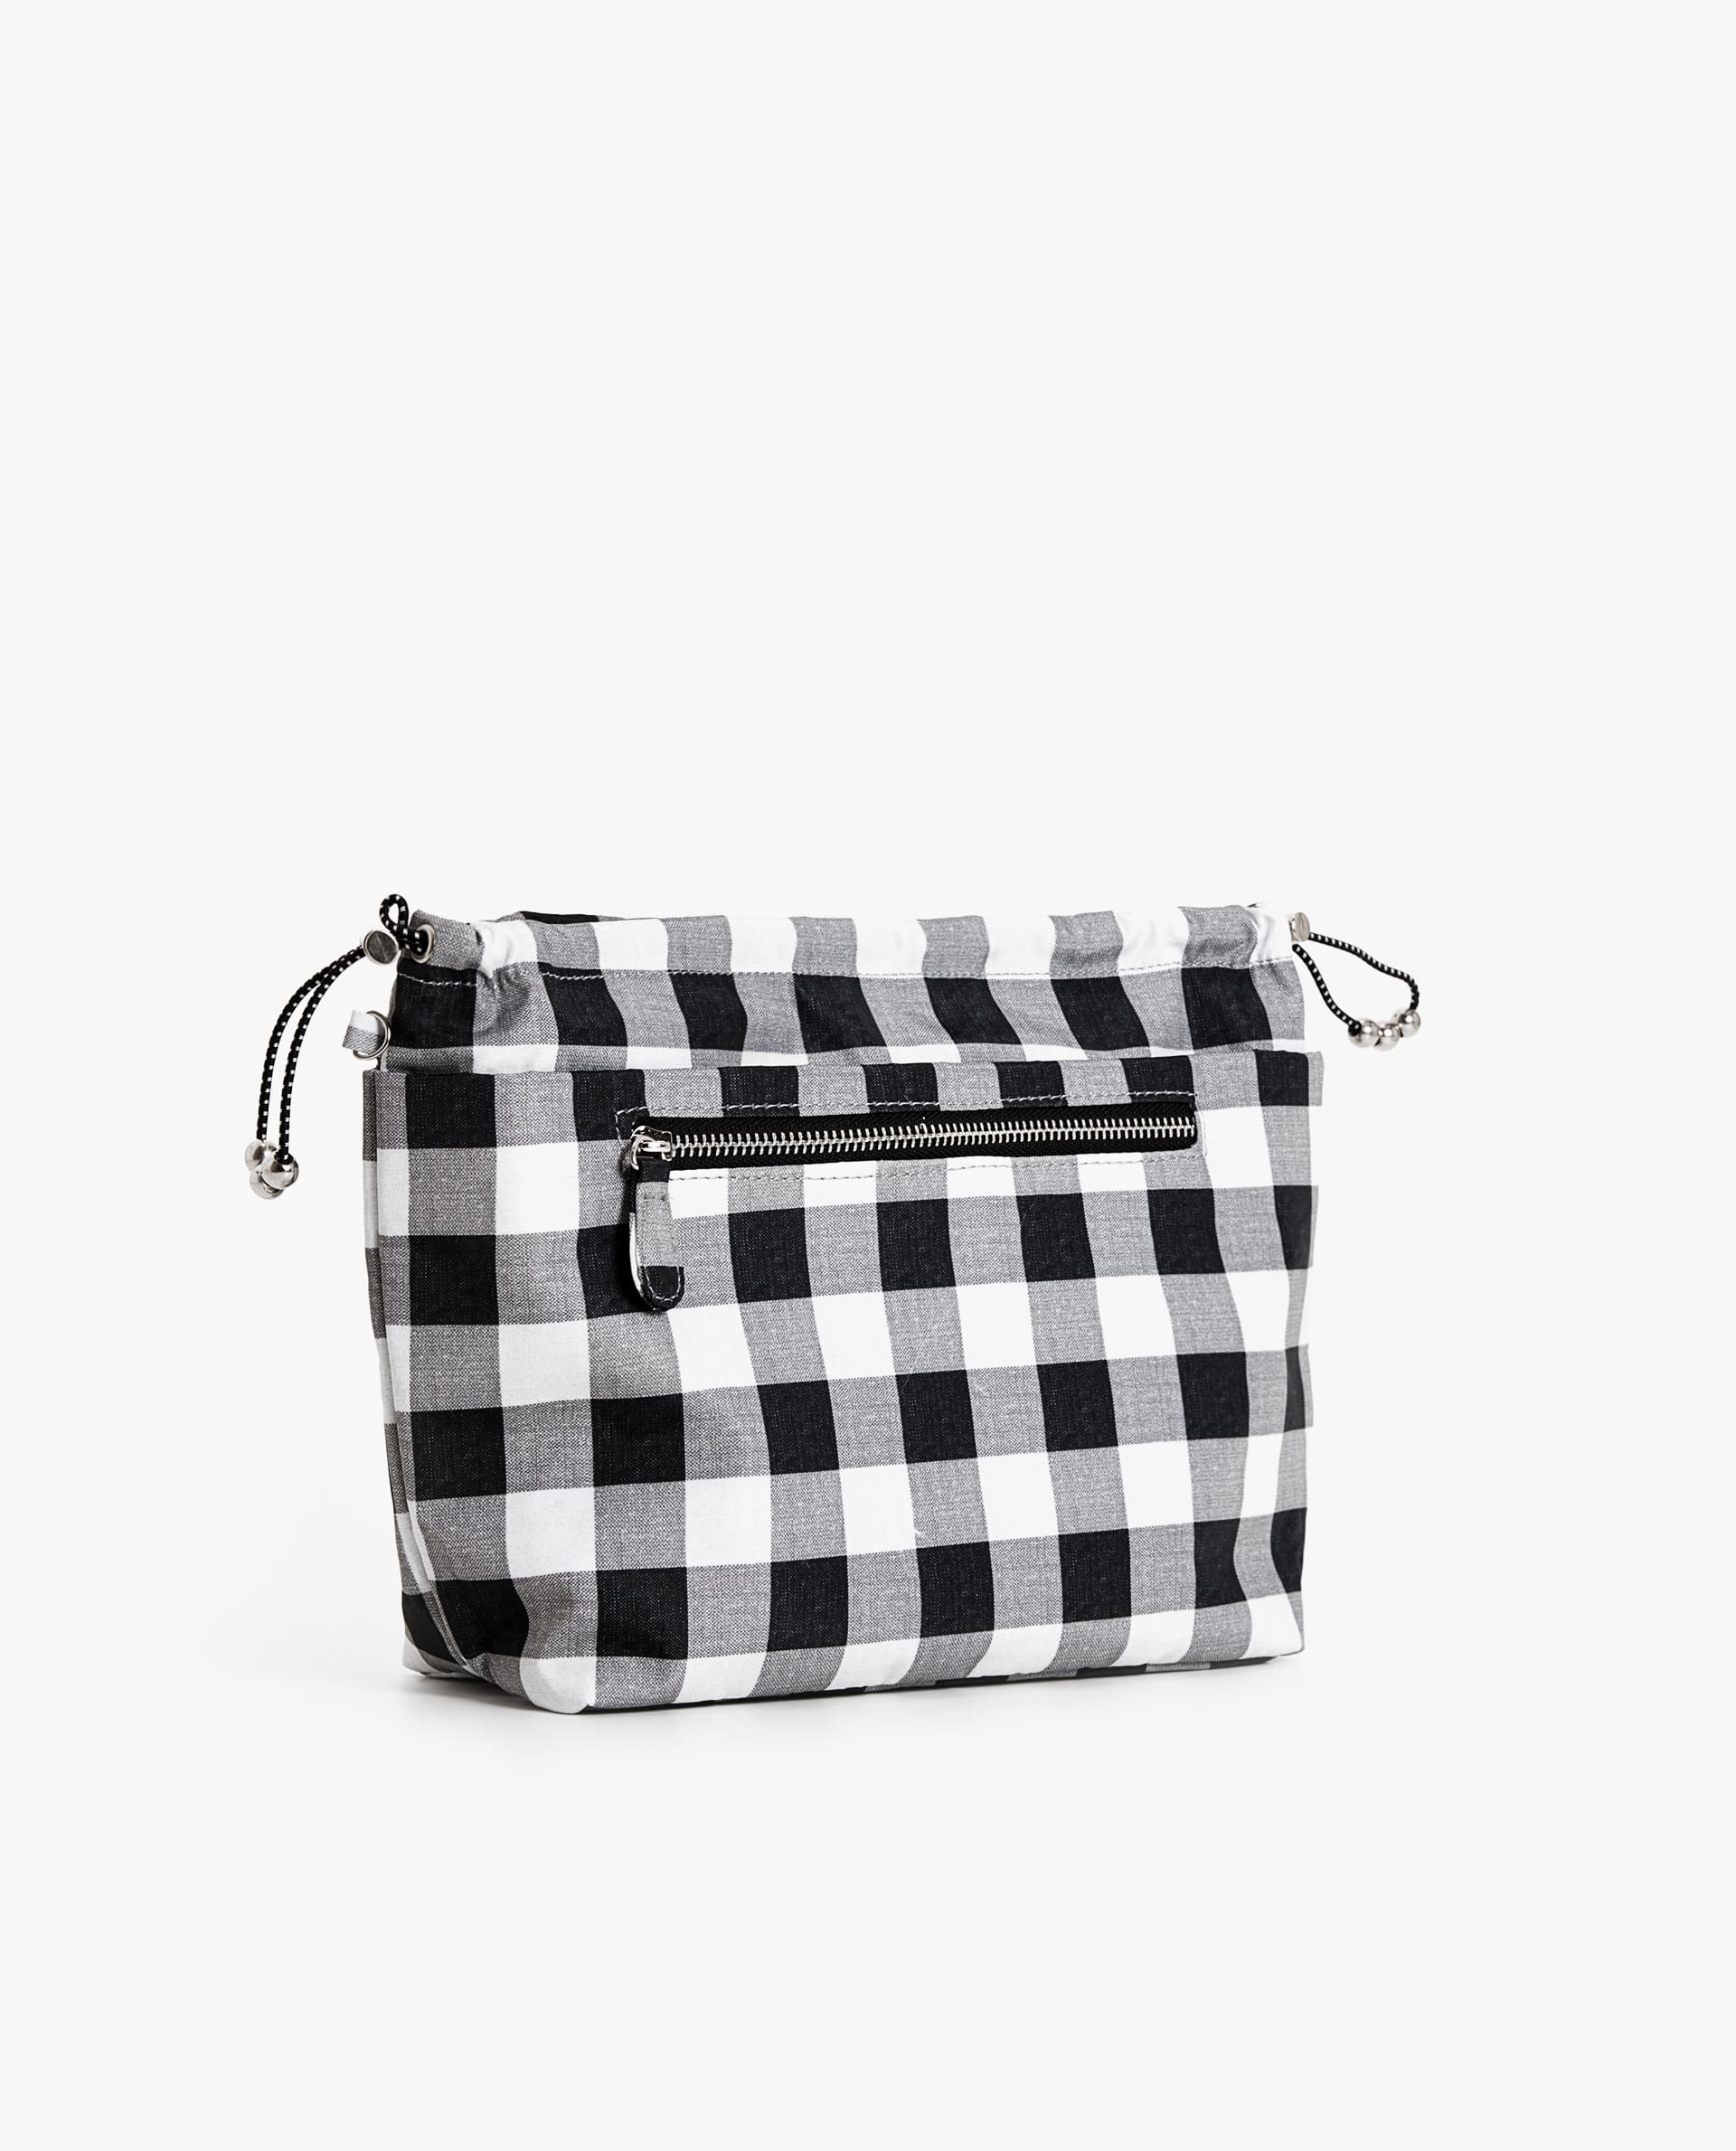 ca9863c781 GINGHAM CHECK HANDBAG ORGANISER - | Zara Home Germany